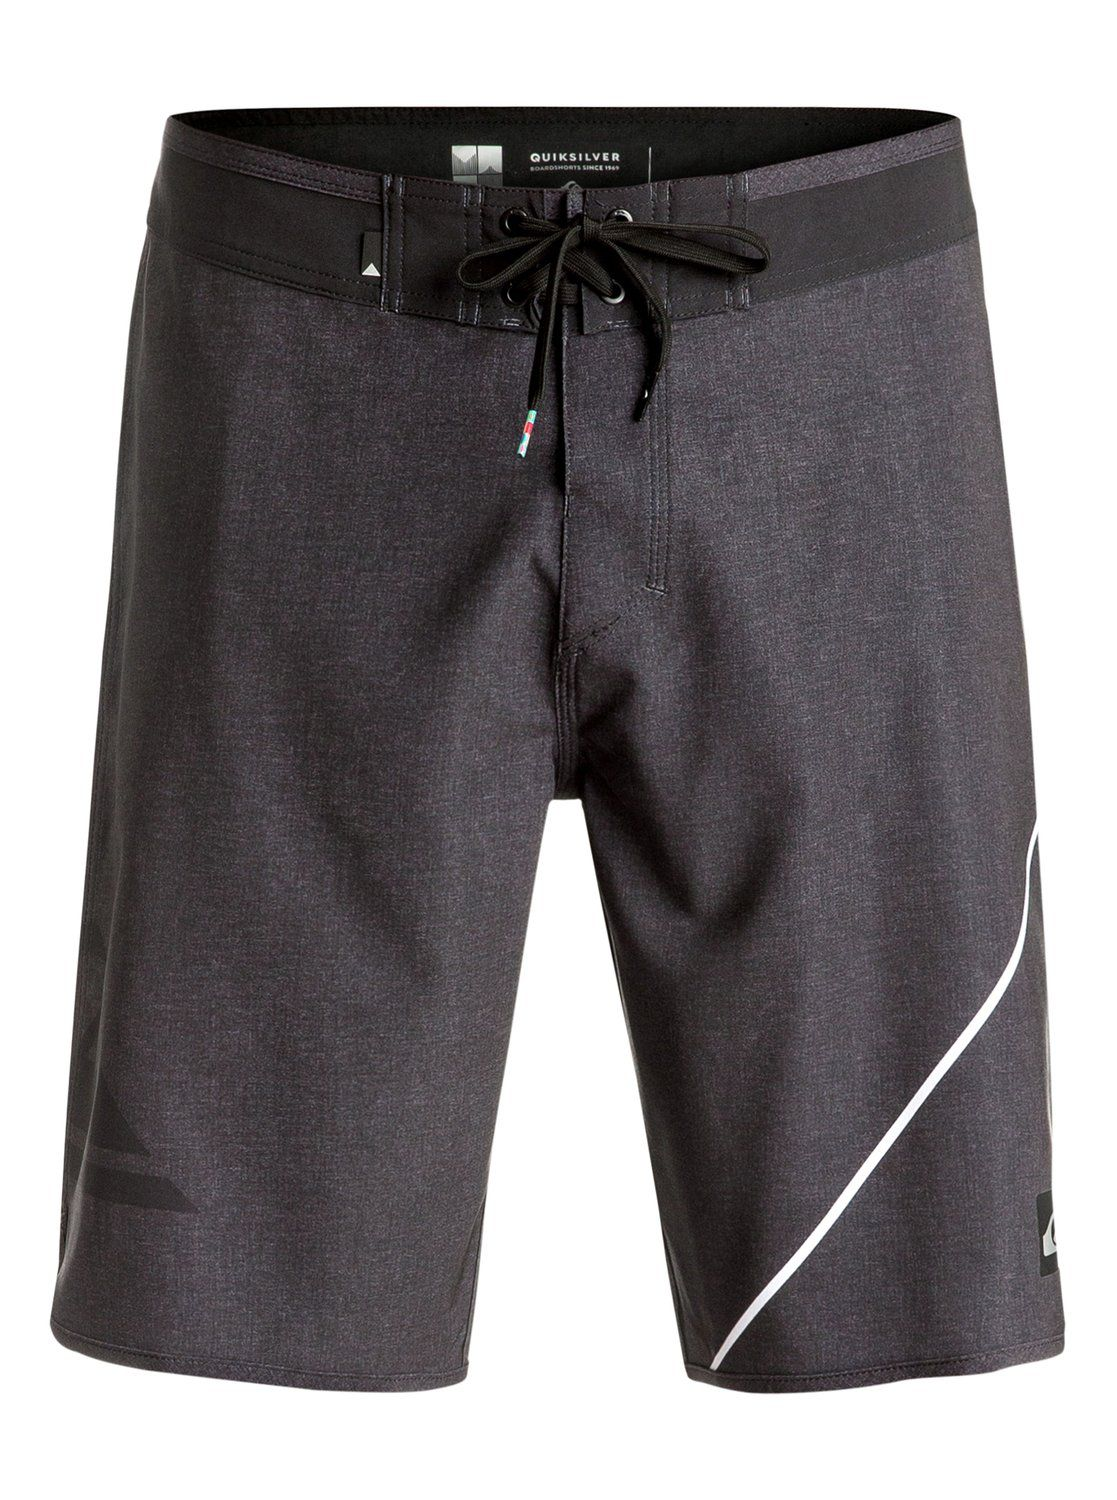 Mens Quiksilver New Wave 20 Boardshort Black